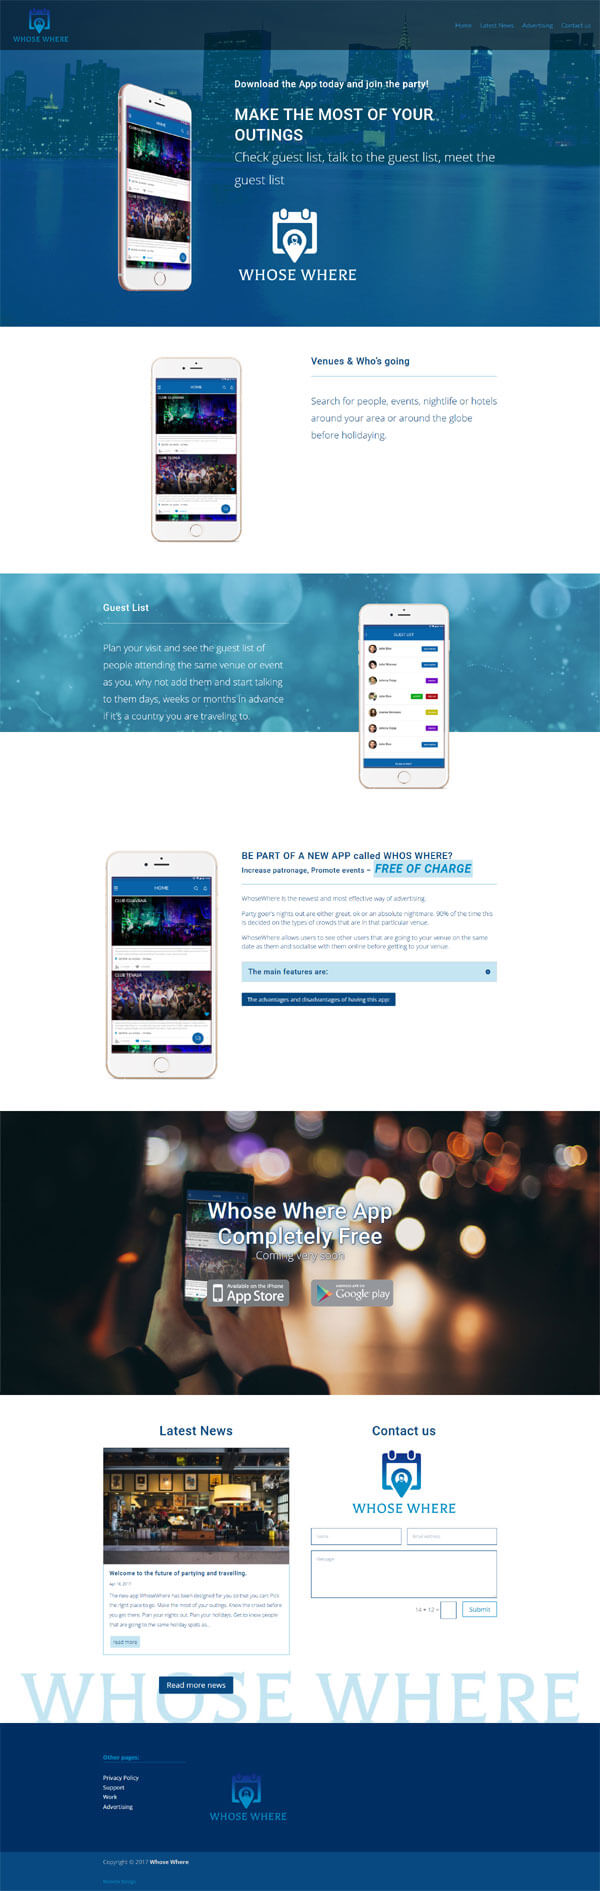 website design in Adelaide for whosewhere